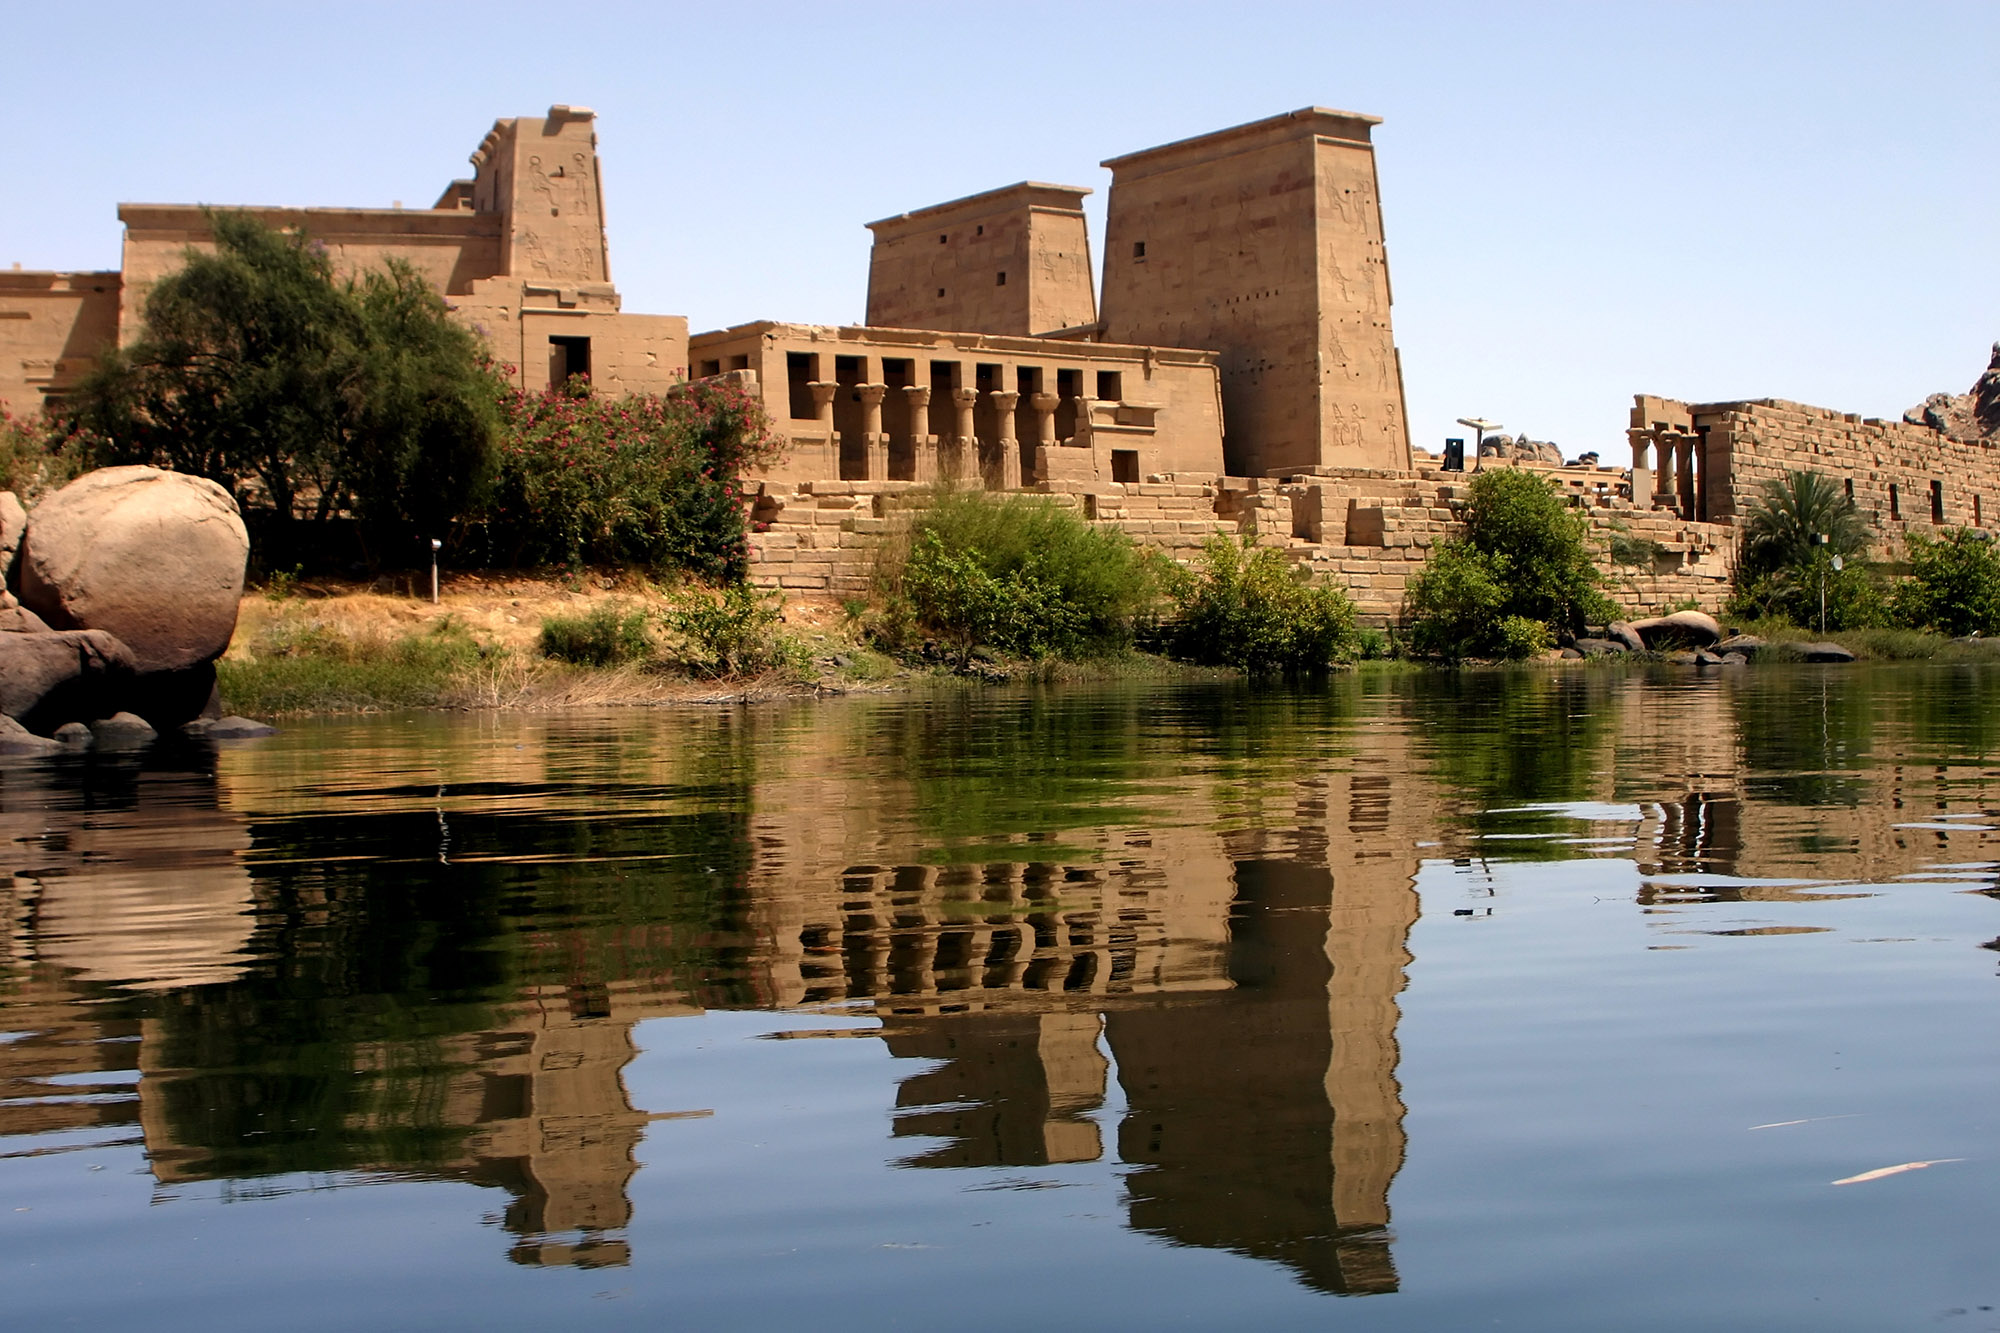 Nile River & Red Seafrom 720 USD - 10 DaysCairo - Aswan - Luxor - Hurghada